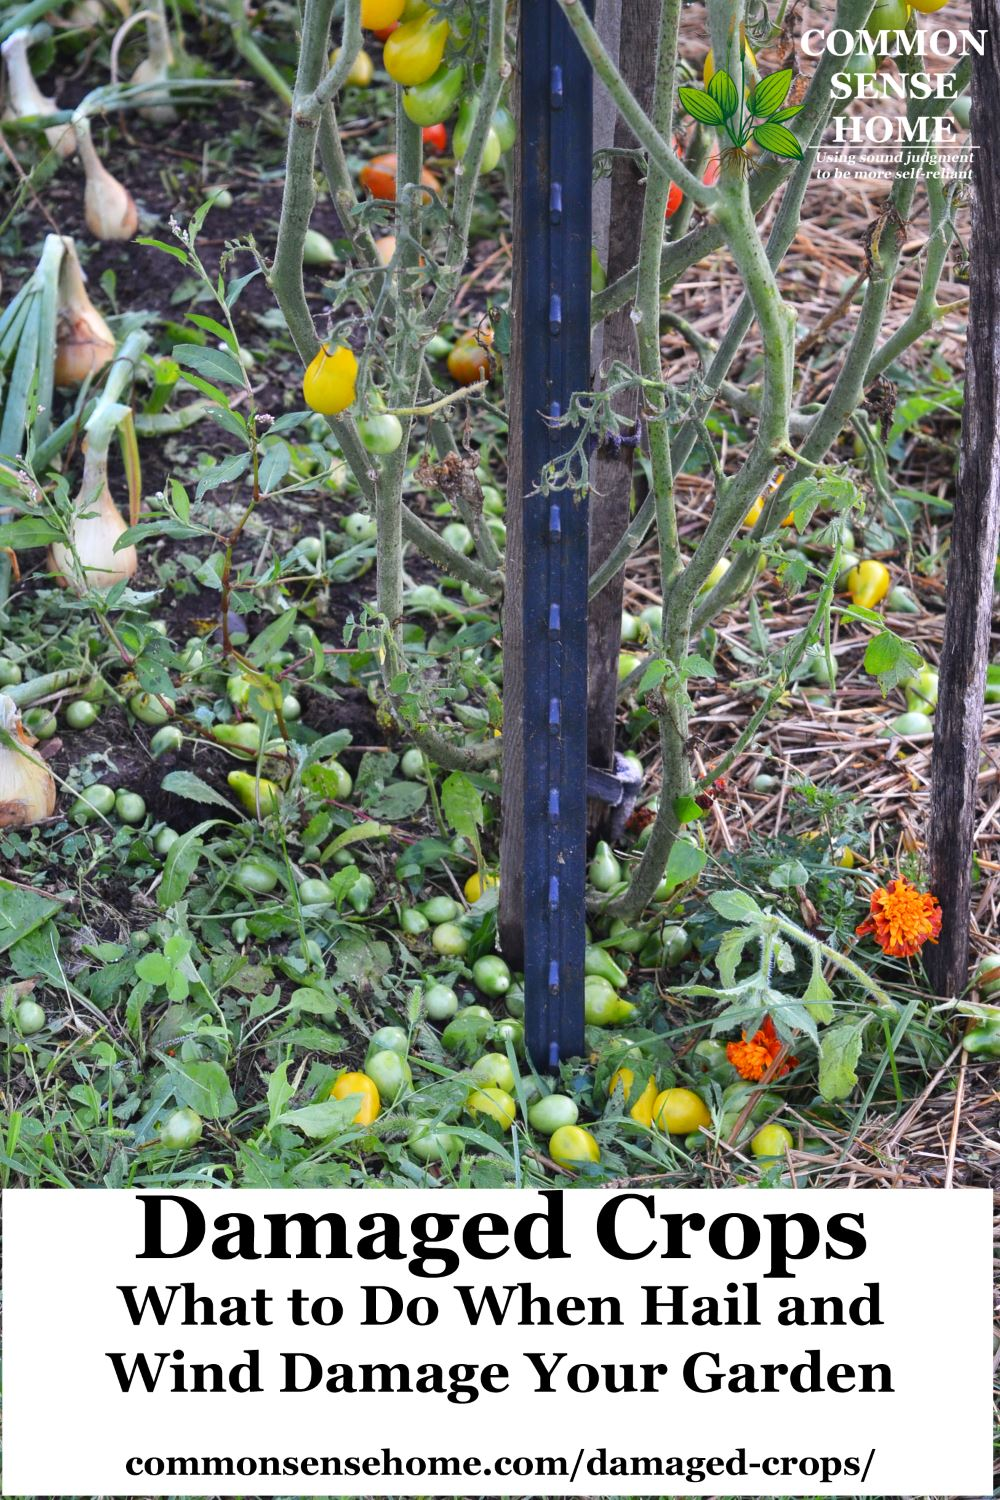 Damaged Crops - What to Do When Hail and Wind Damage Your Garden